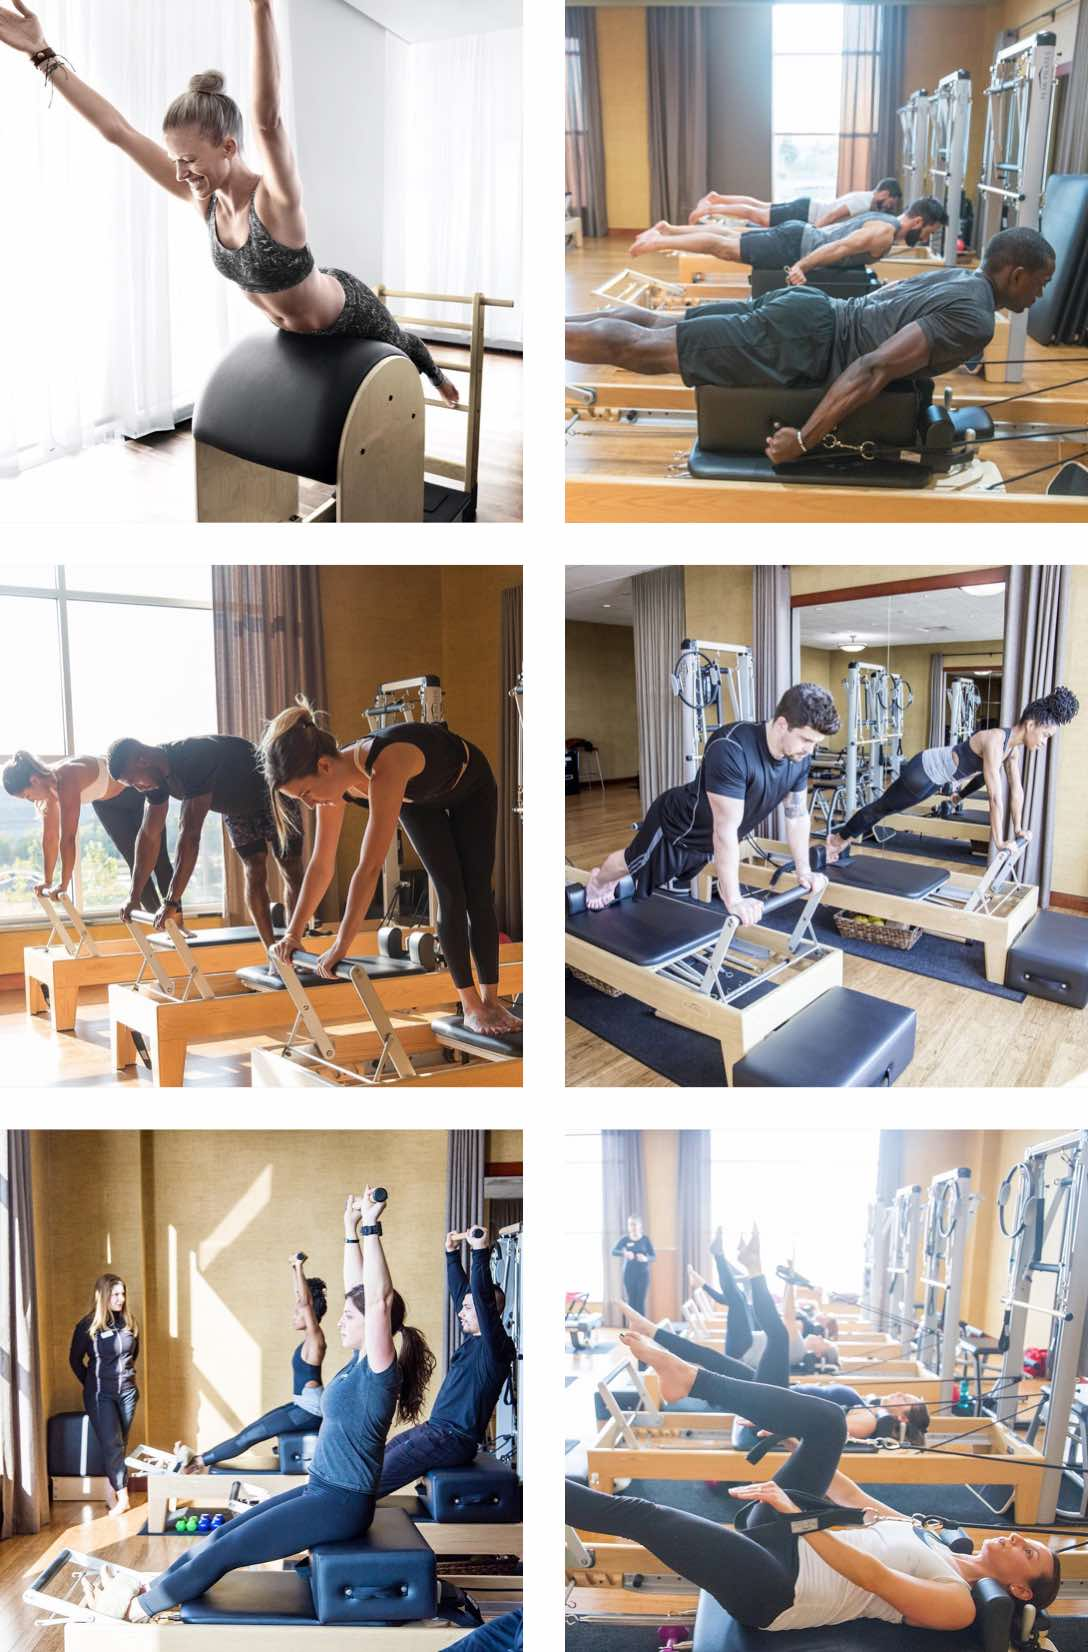 Group of people using Pilates reformer machines in a Pilates class at Life Time